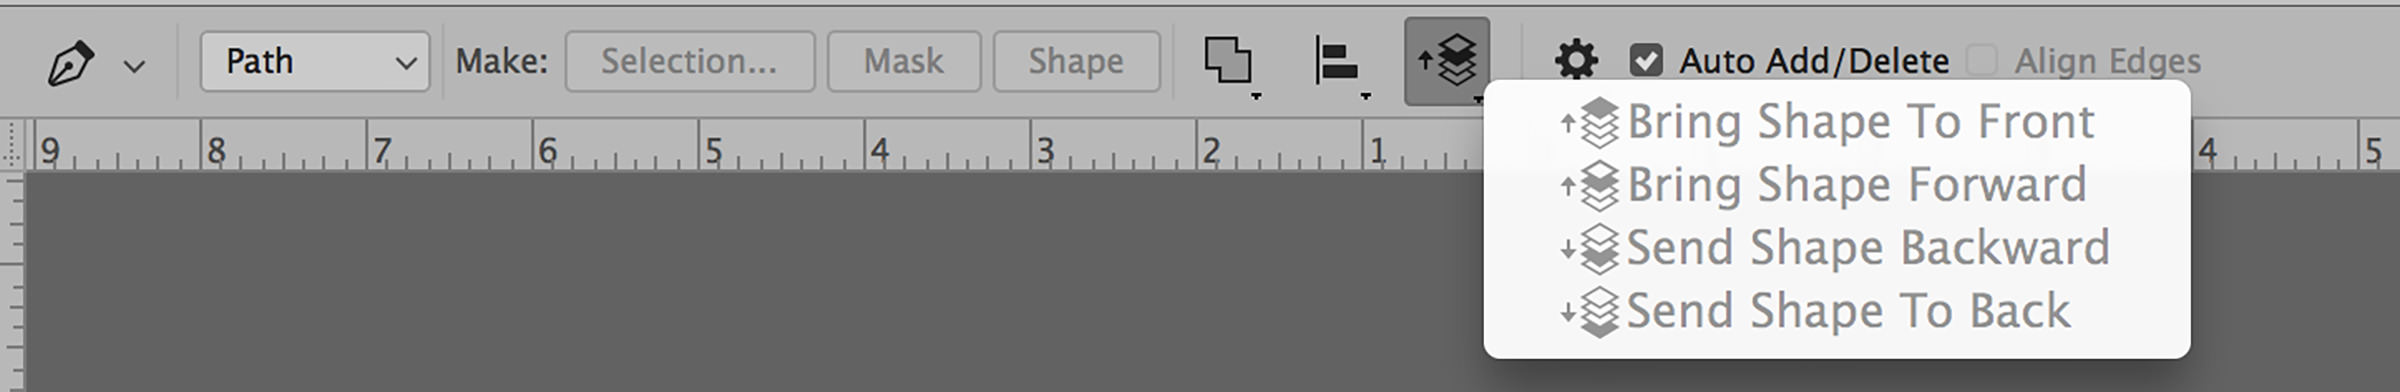 pen tool in photoshop shape layer